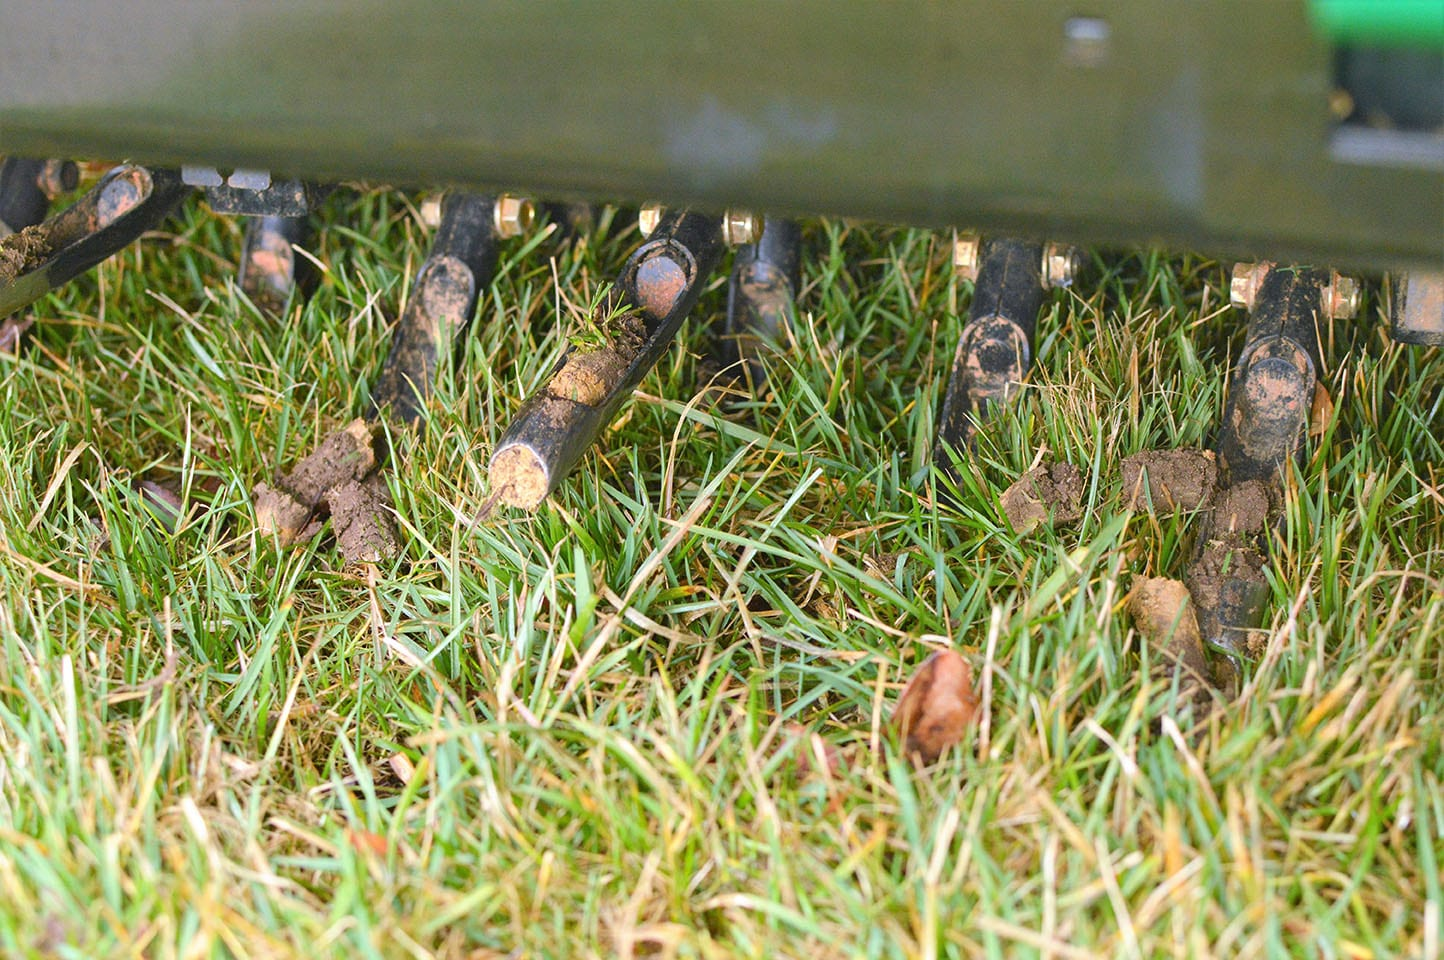 Aeration plugs after core aeration service by Lawn-Art in Toledo OH